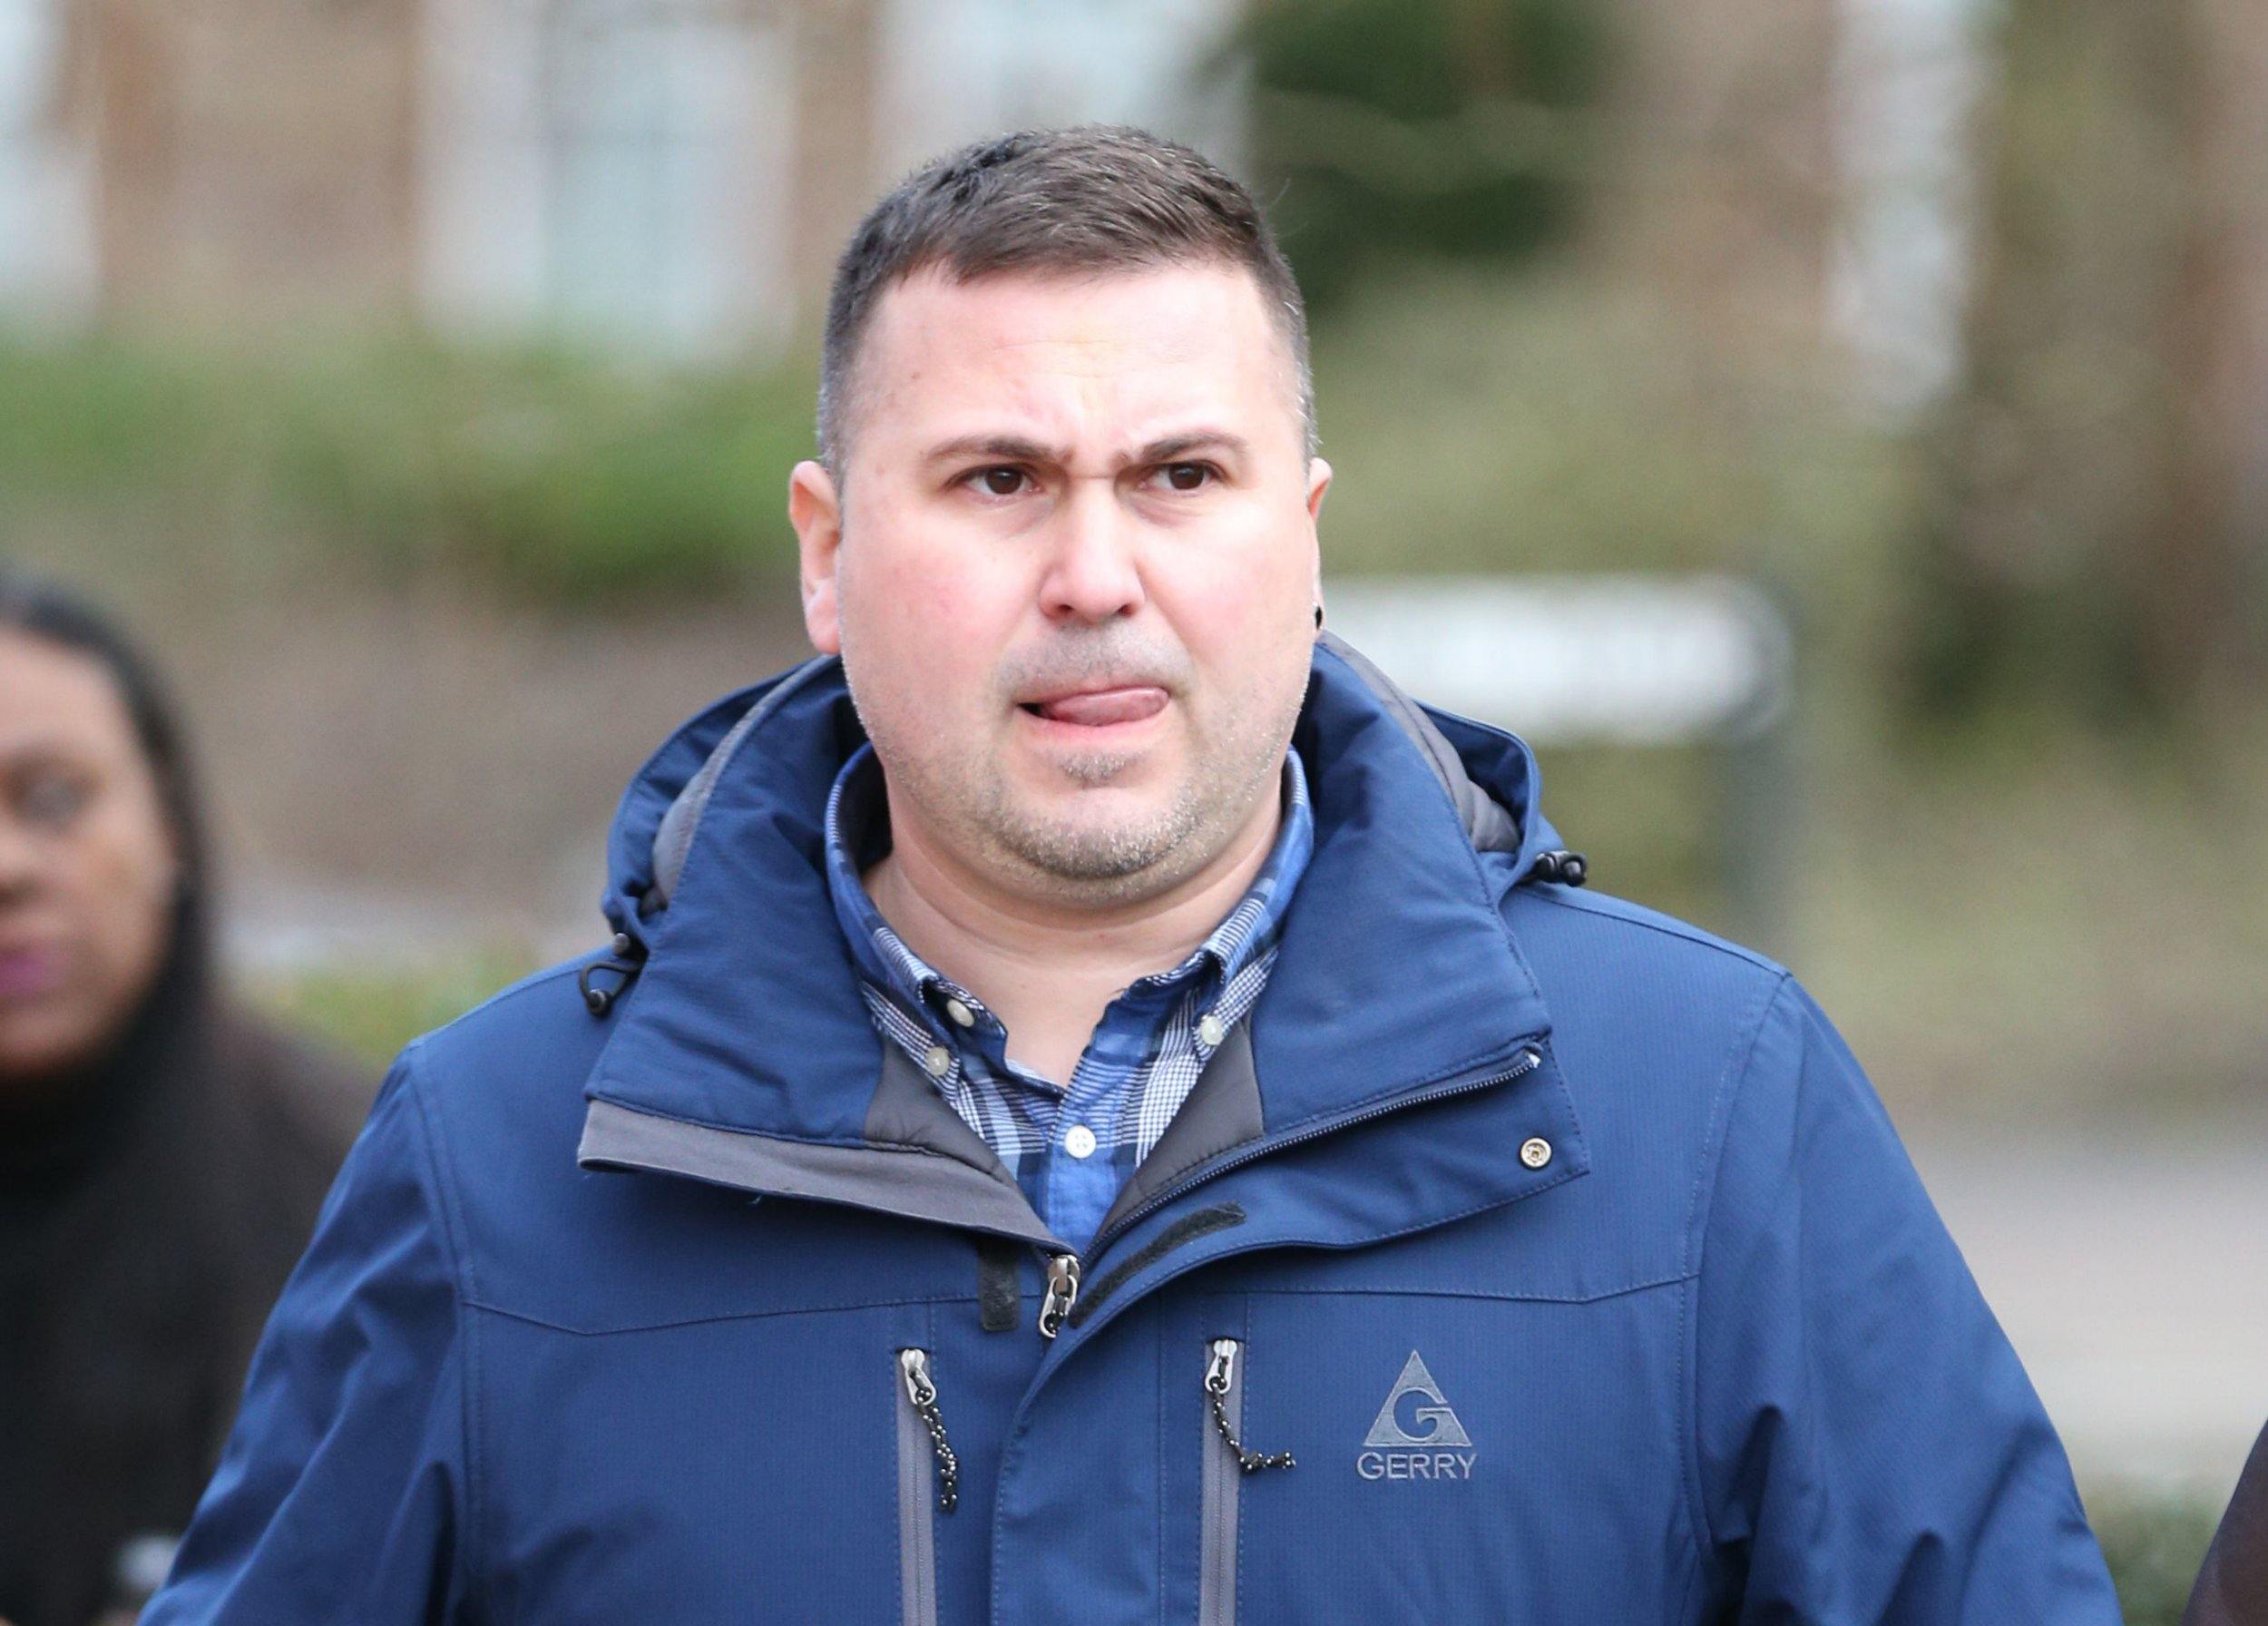 George Rusu, 38, arrives at Uxbridge Magistrates' Court, London, where he is charged with flying a drone near to Heathrow's runway without permission of air traffic control on Christmas Eve last year. PRESS ASSOCIATION Photo. Picture date: Tuesday January 22, 2019. See PA story COURTS Drone. Photo credit should read: Jonathan Brady/PA Wire